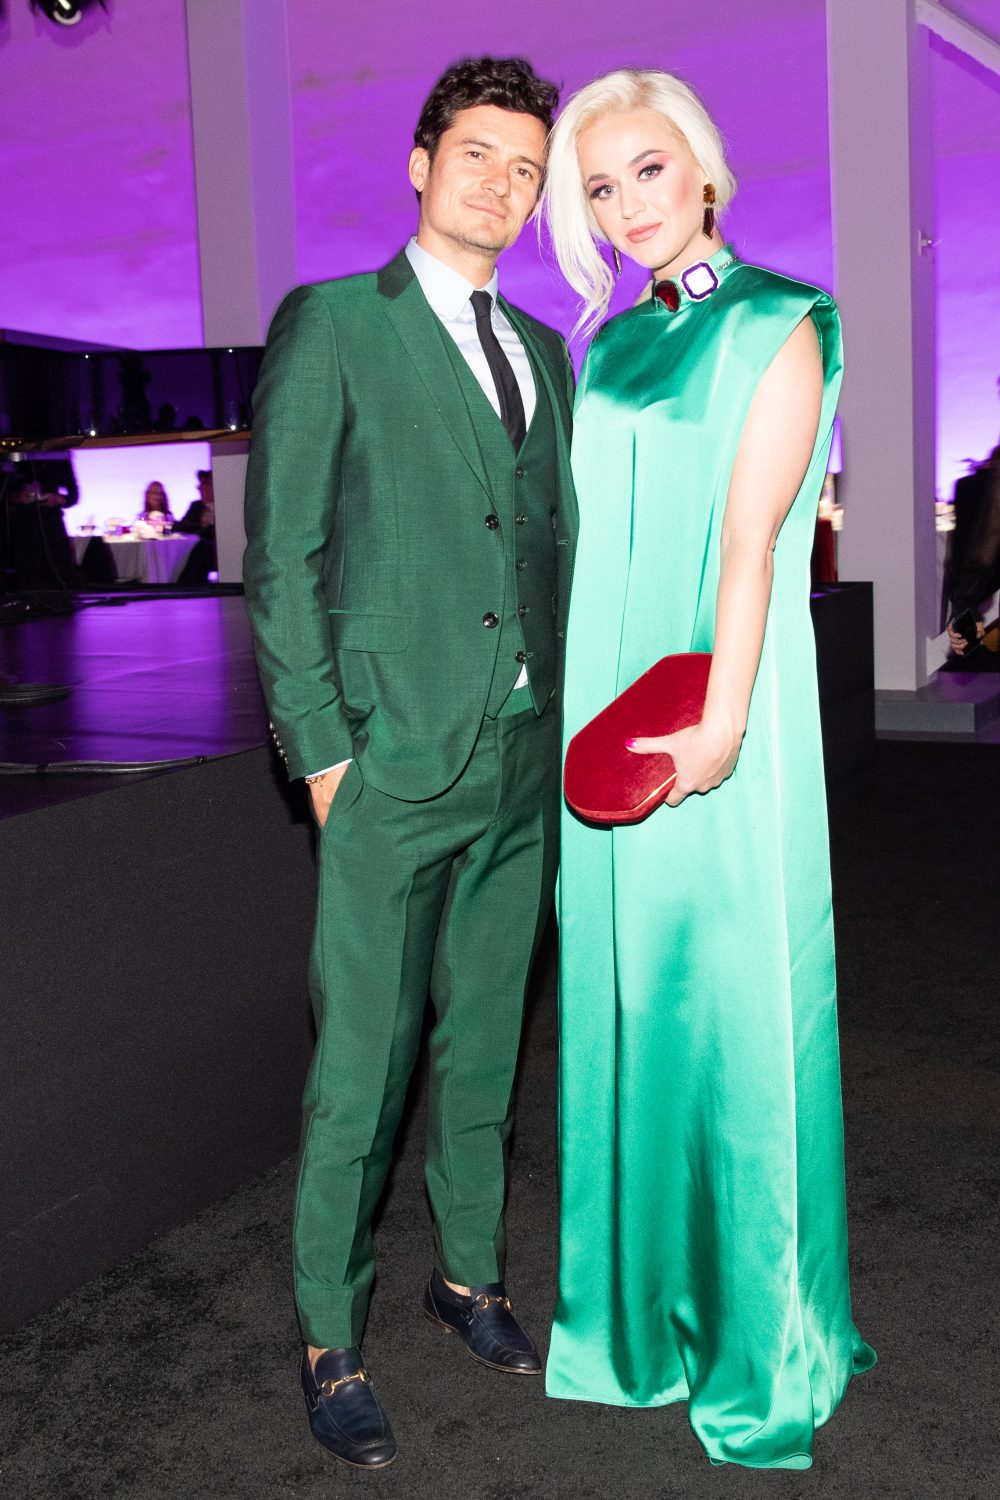 The MOCA Benefit Brought Out Big Stars and Really Good Fashion